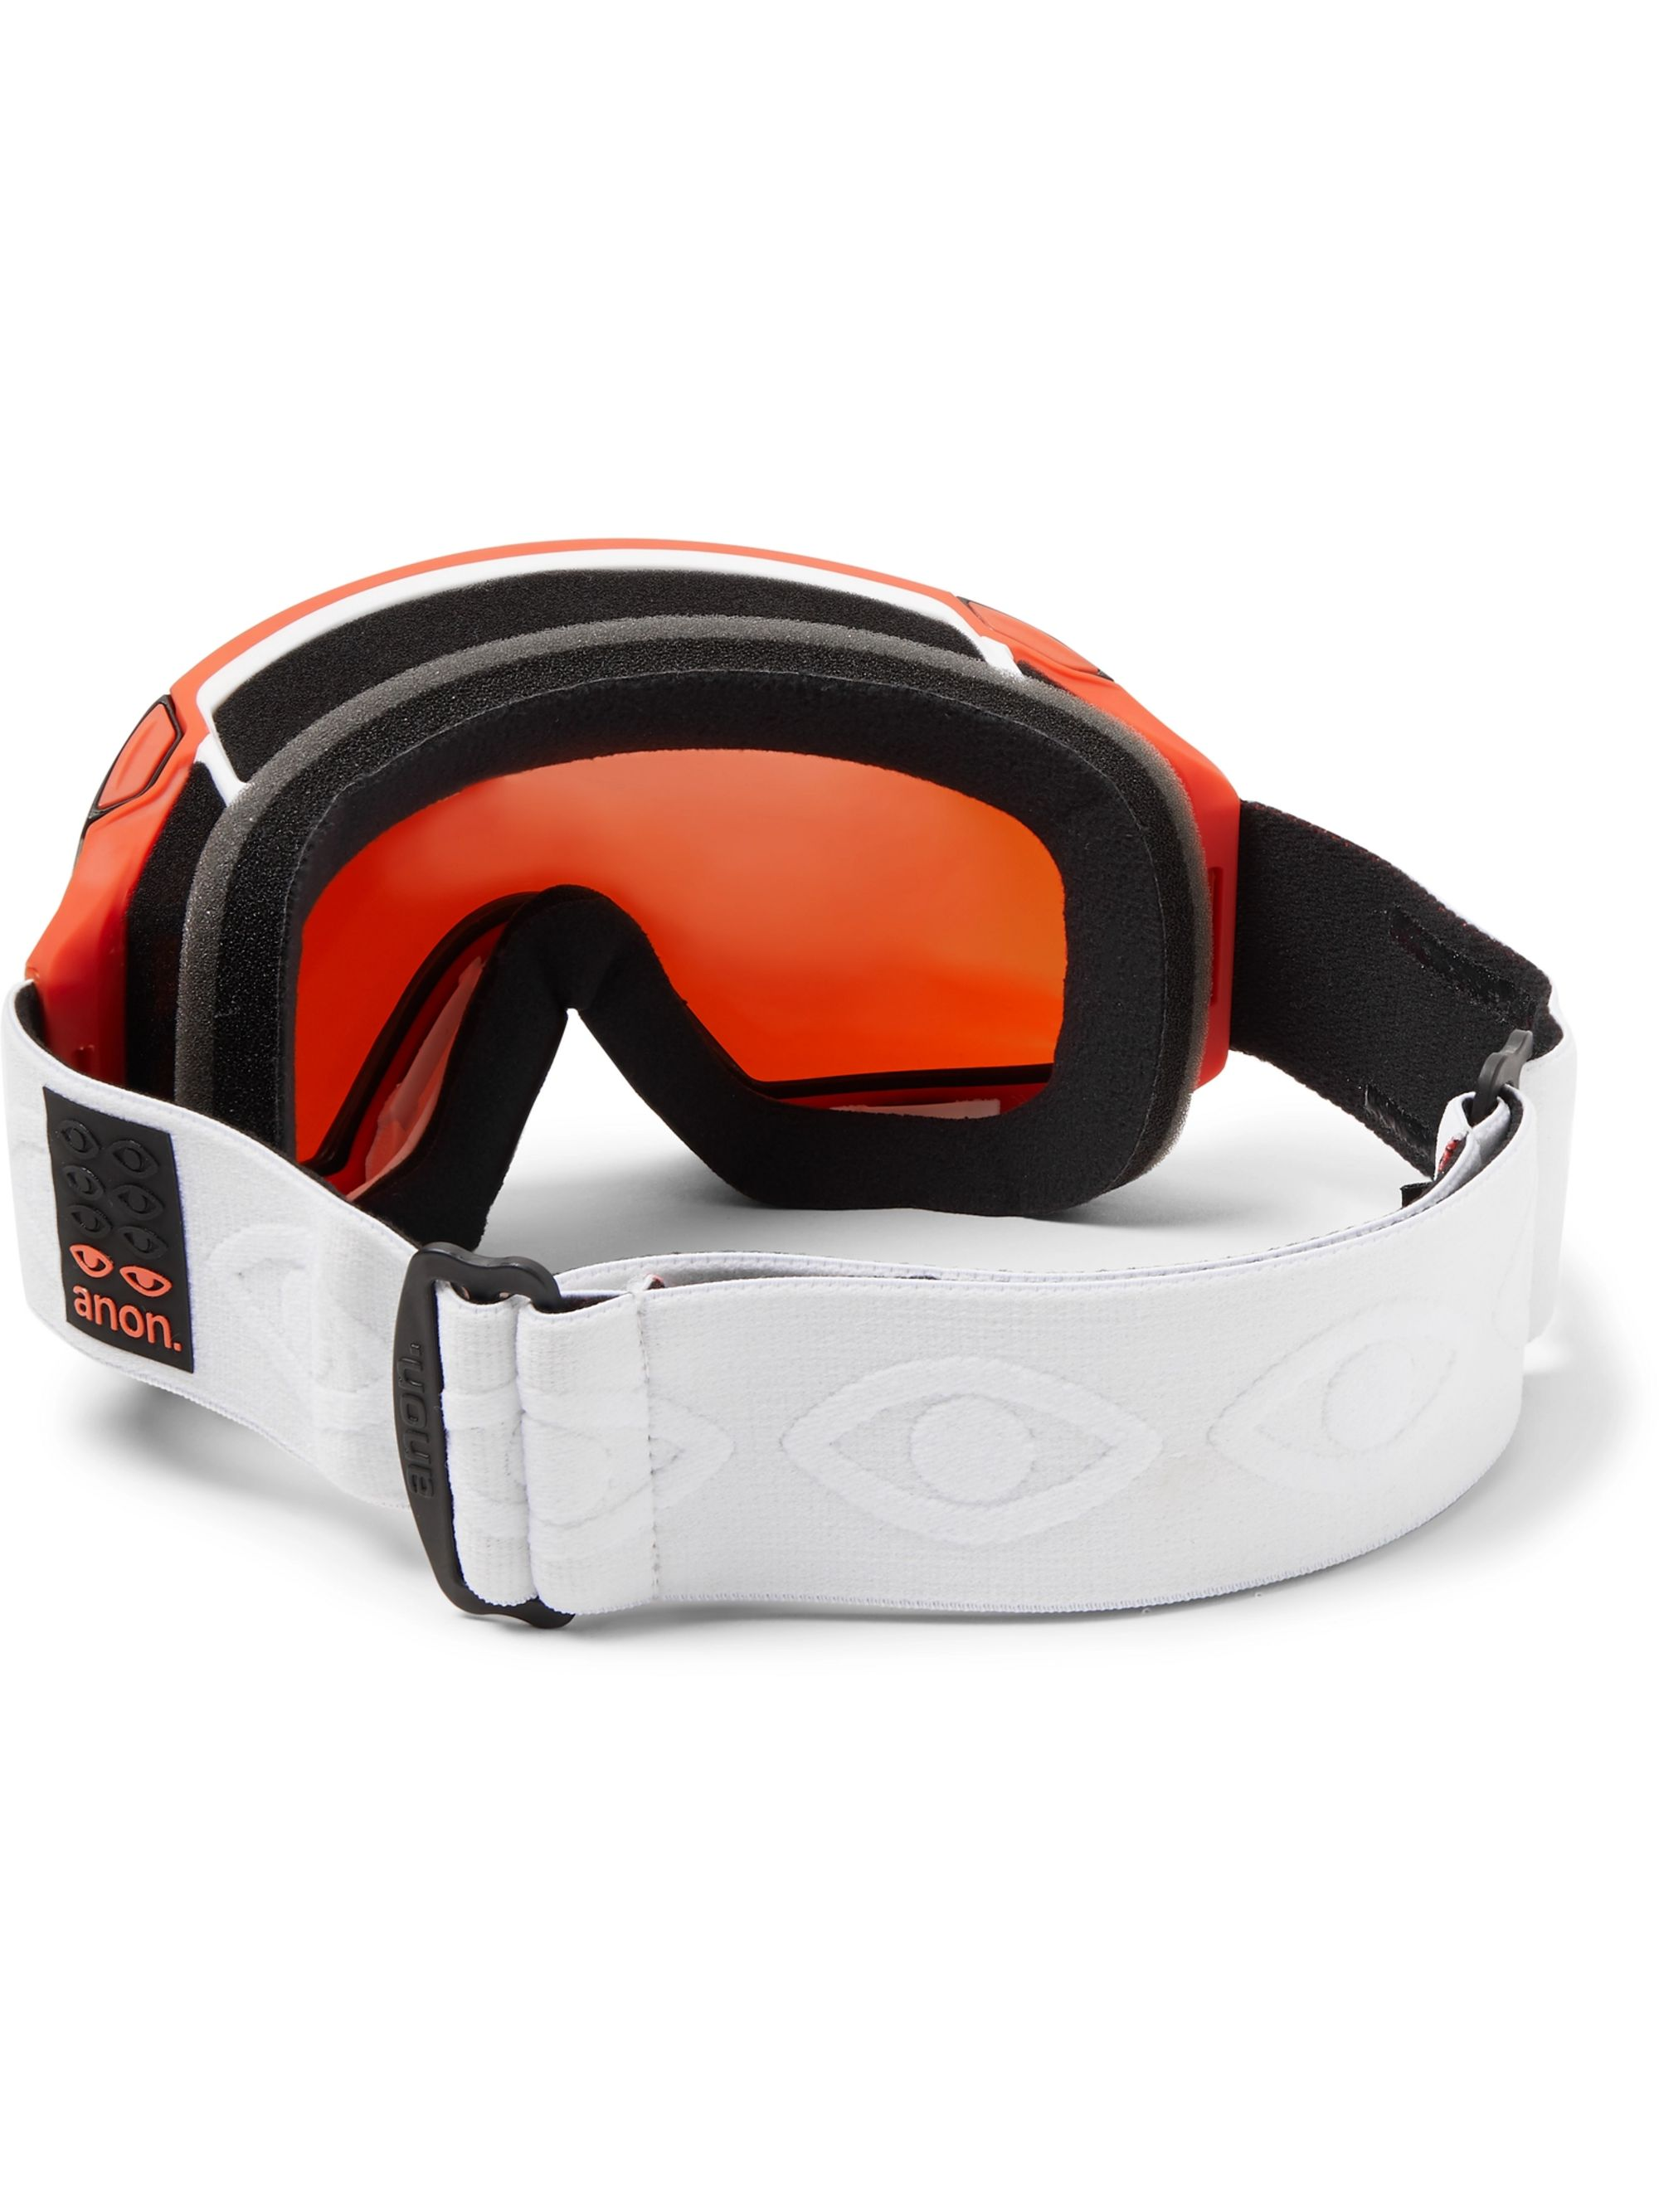 Anon M4 Cylindrical Ski Goggles and Stretch-Jersey Face Mask